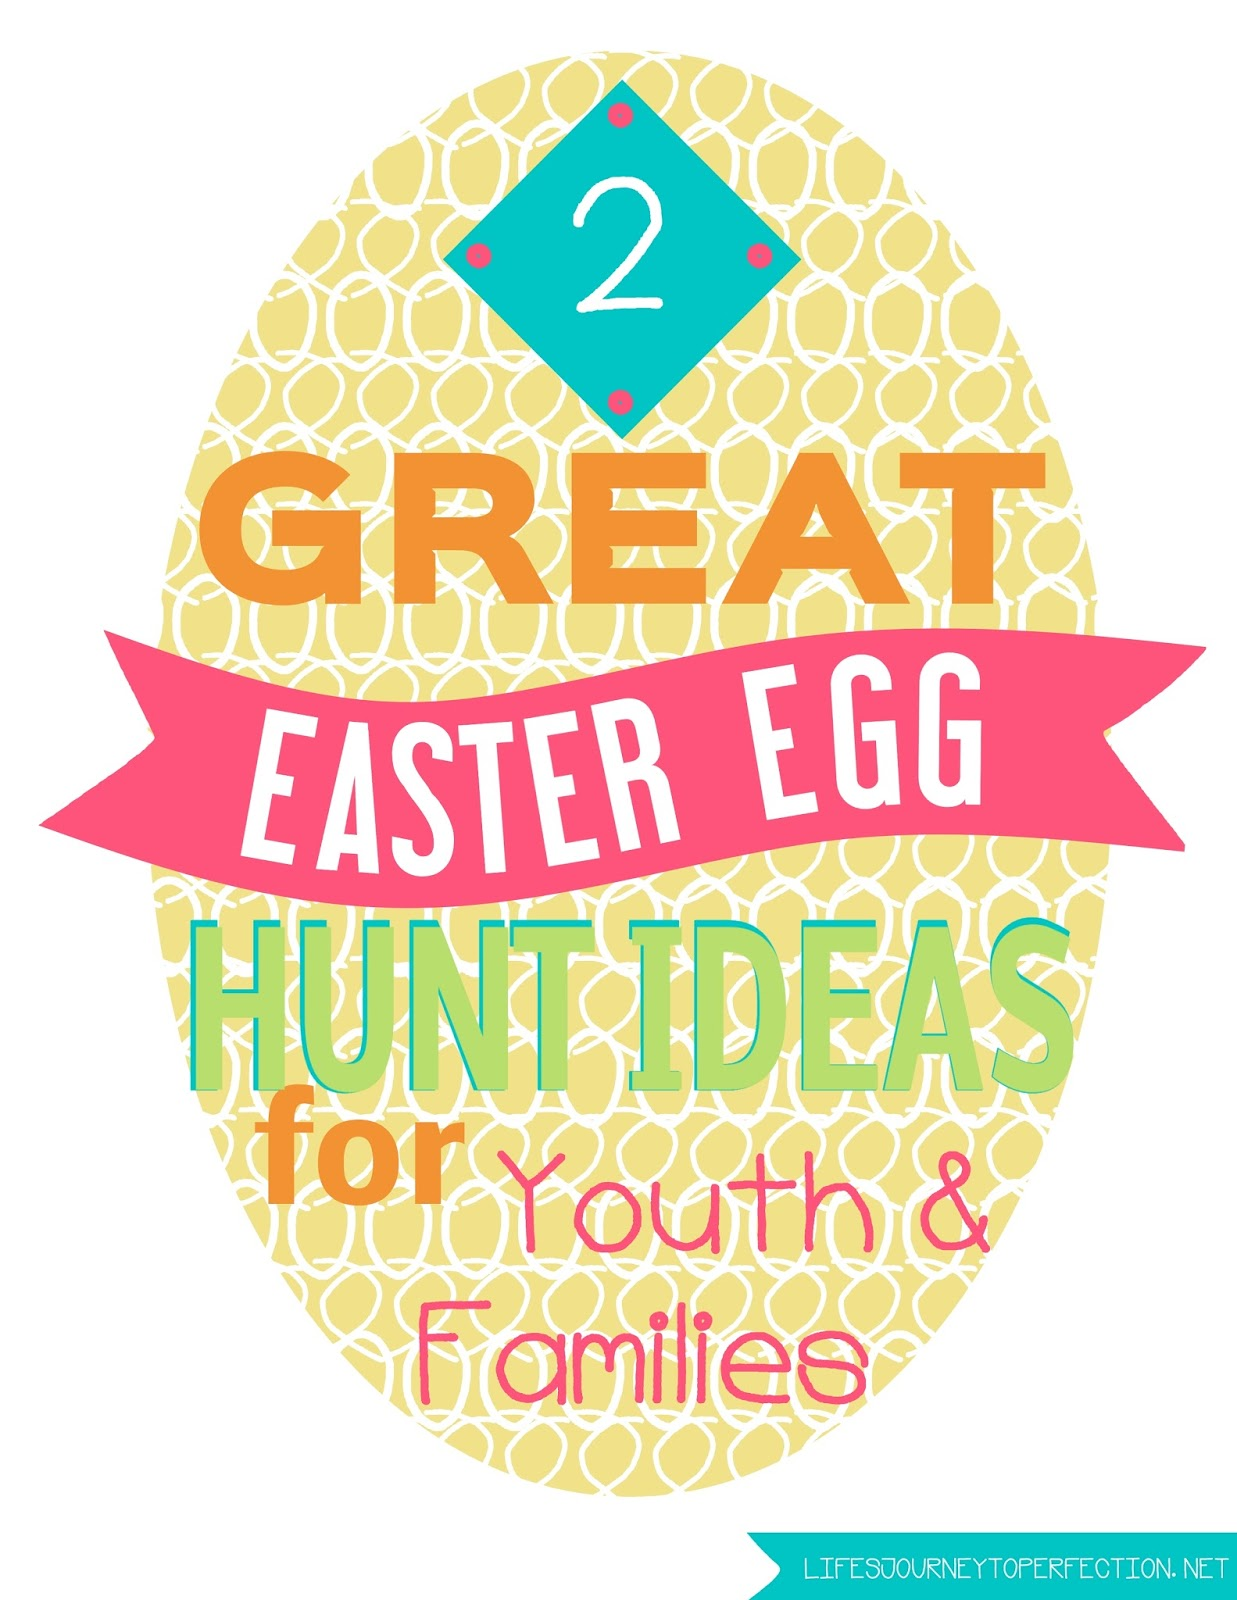 2 Great Easter Hunt Ideas for Youth and Families